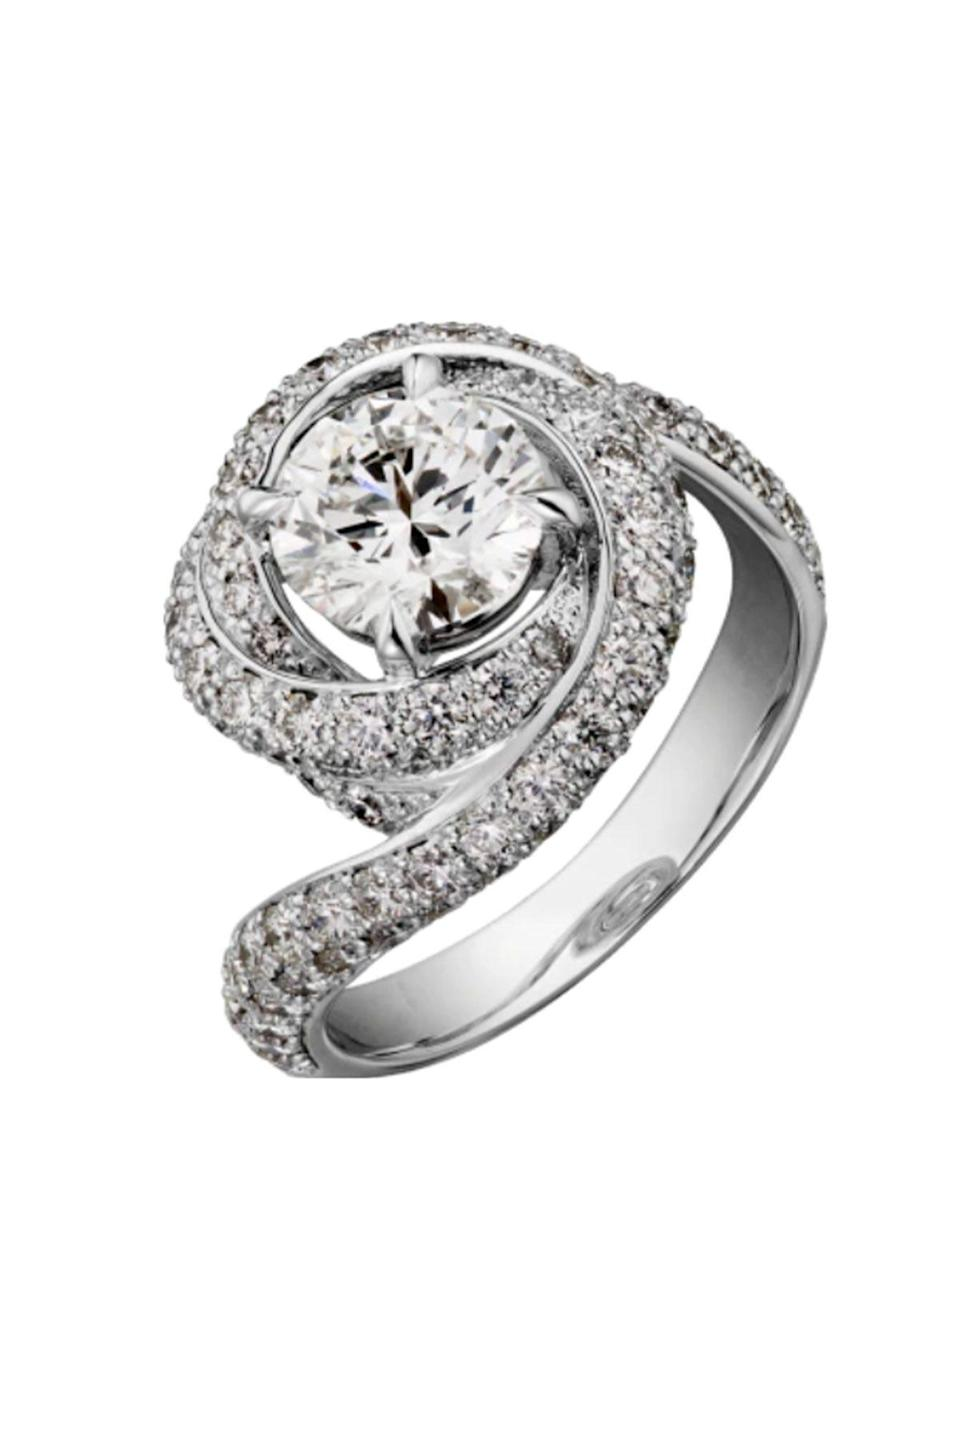 """<p><strong>Cartier</strong></p><p>cartier.com</p><p><a href=""""https://www.cartier.com/en-us/collections/engagement/engagement-rings/trinity-ruban/n4250400-trinity-ruban-solitaire.html"""" rel=""""nofollow noopener"""" target=""""_blank"""" data-ylk=""""slk:Shop Now"""" class=""""link rapid-noclick-resp"""">Shop Now</a></p><p>This Cartier engagement ring makes a bold, modern statement. </p>"""